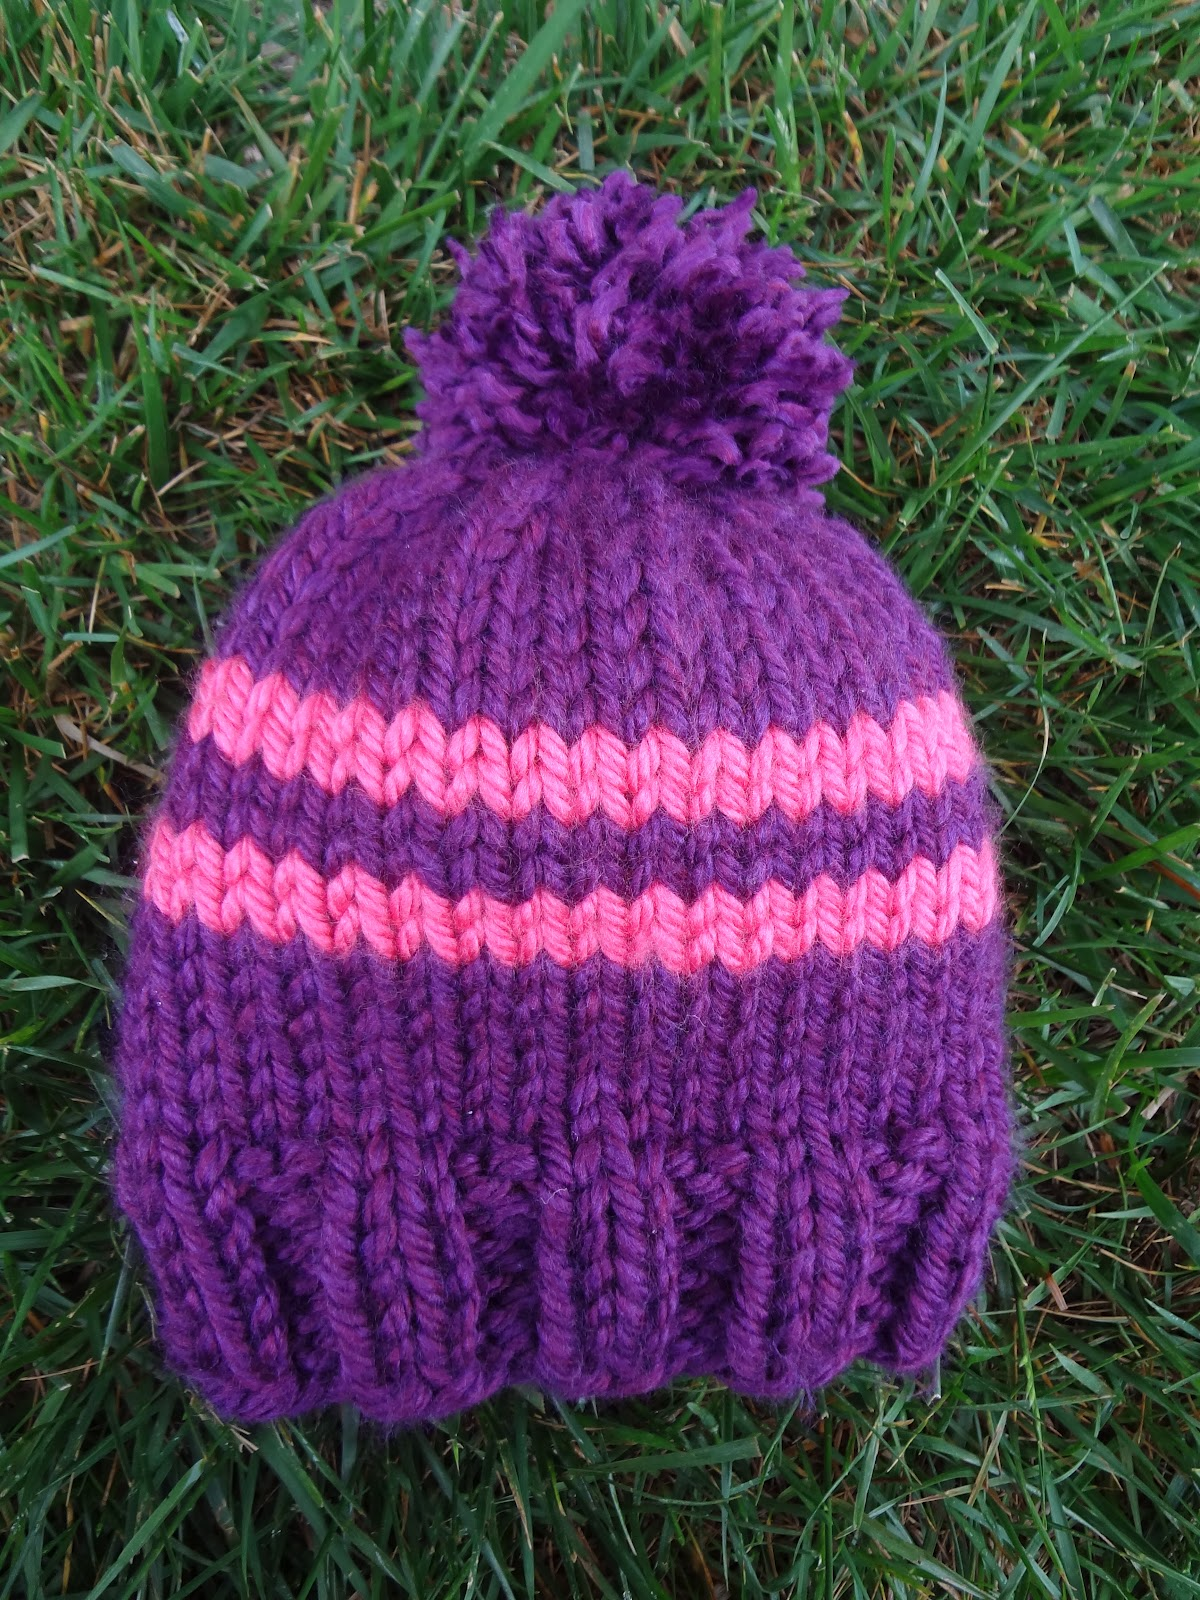 Knitting Patterns Free : Fiber Flux: Free Knitting Pattern! Preschooler Rugby Hat